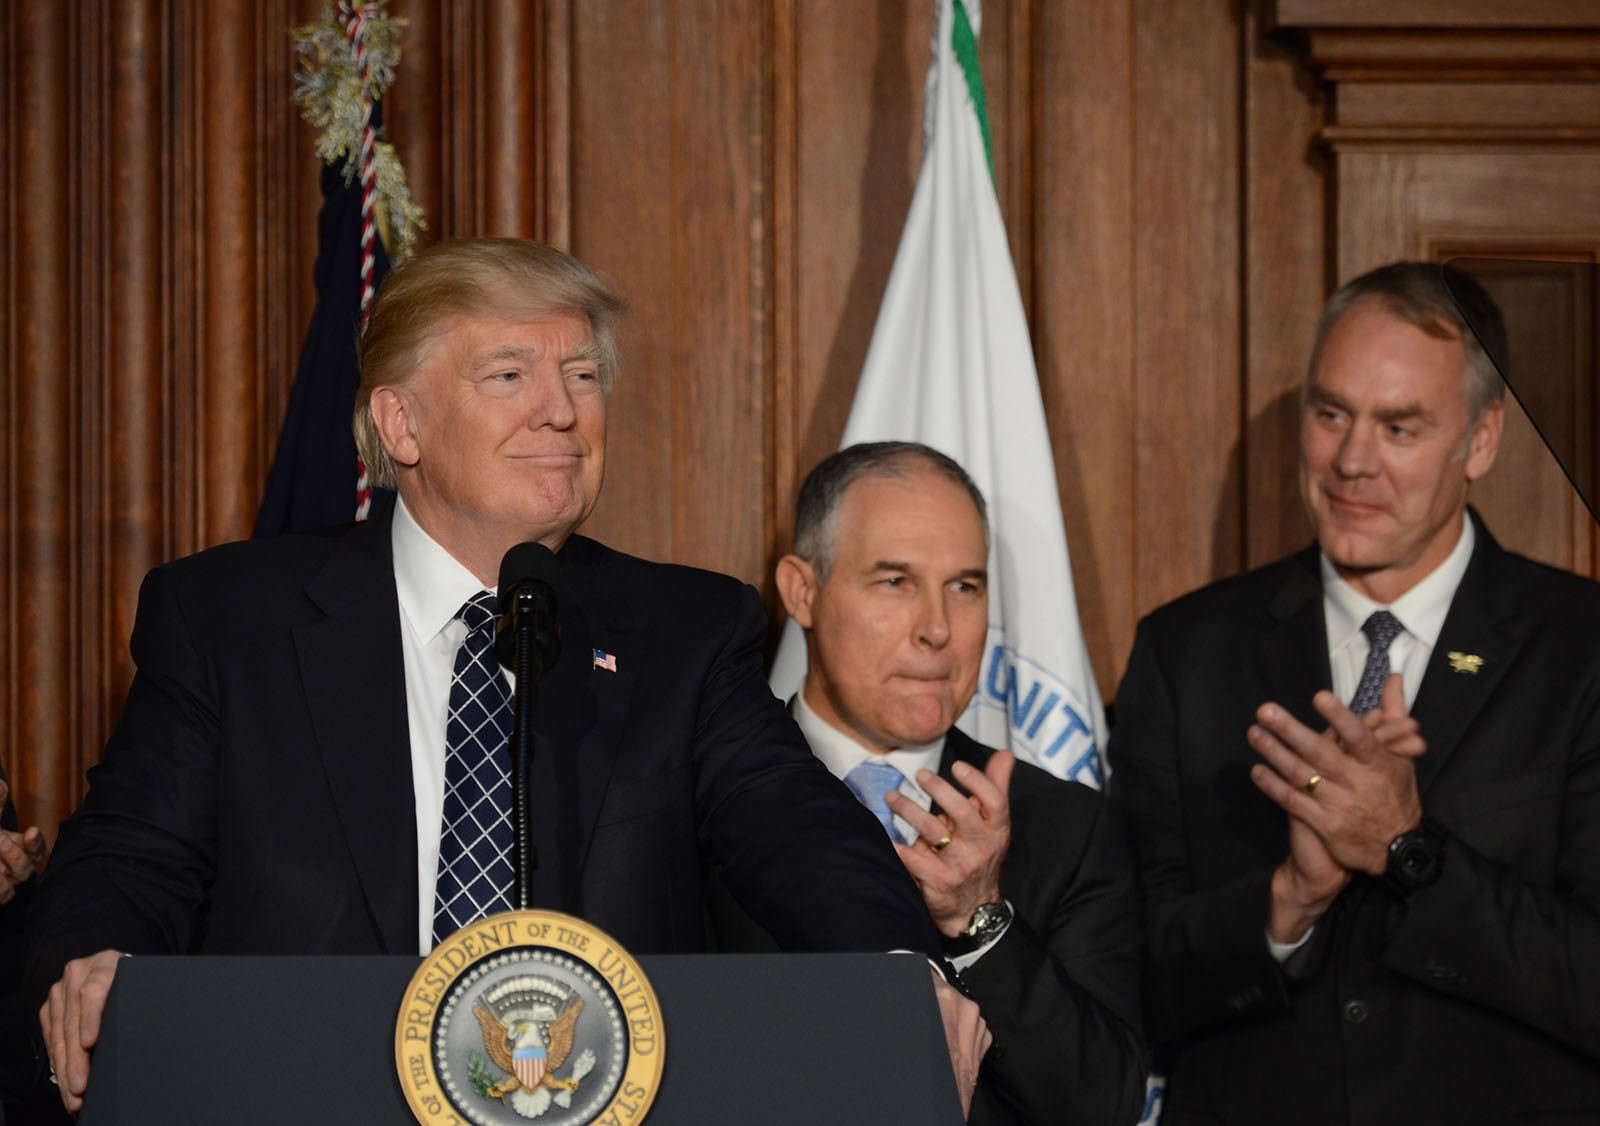 President Donald Trump and two of his main embattled cabinet secretaries who wield huge sway over U.S environmental policy and America's public lands, EPA Administrator Scott Pruitt and Interior Secretary Ryan Zinke. Photo courtesy US Interior Department